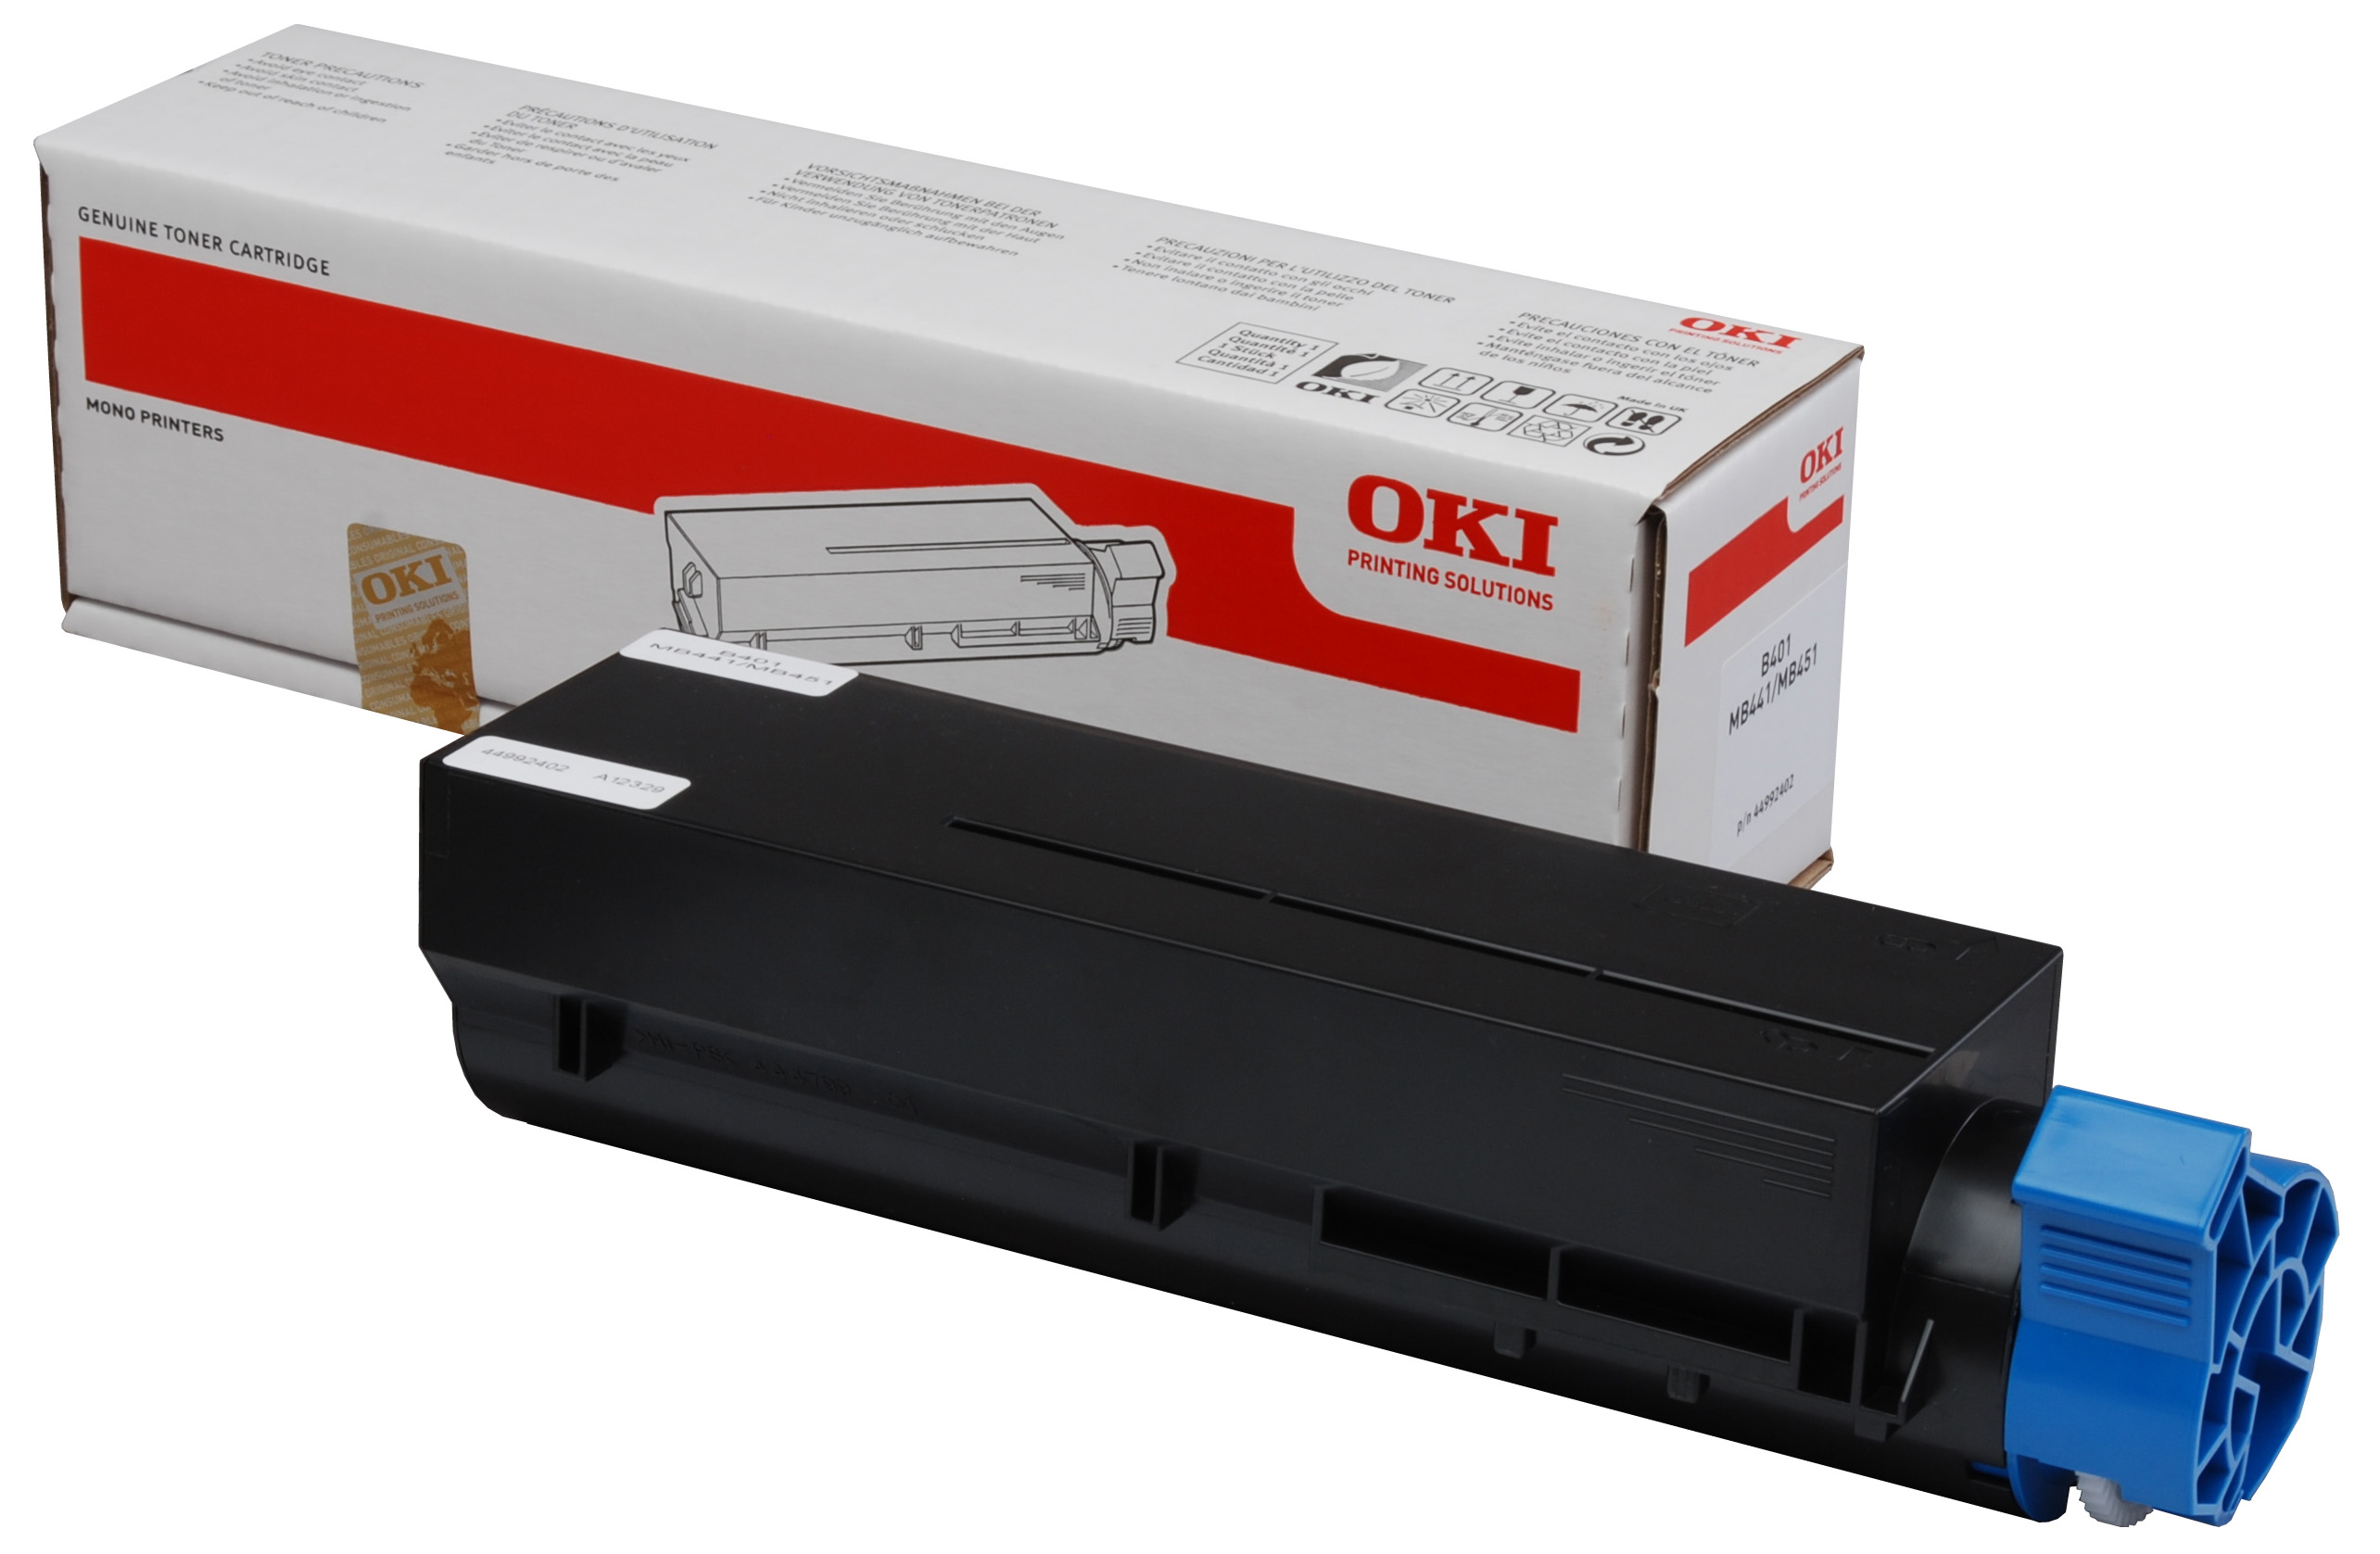 Genuine Oki (OK44992402) Black Toner Cartridge (44992402)